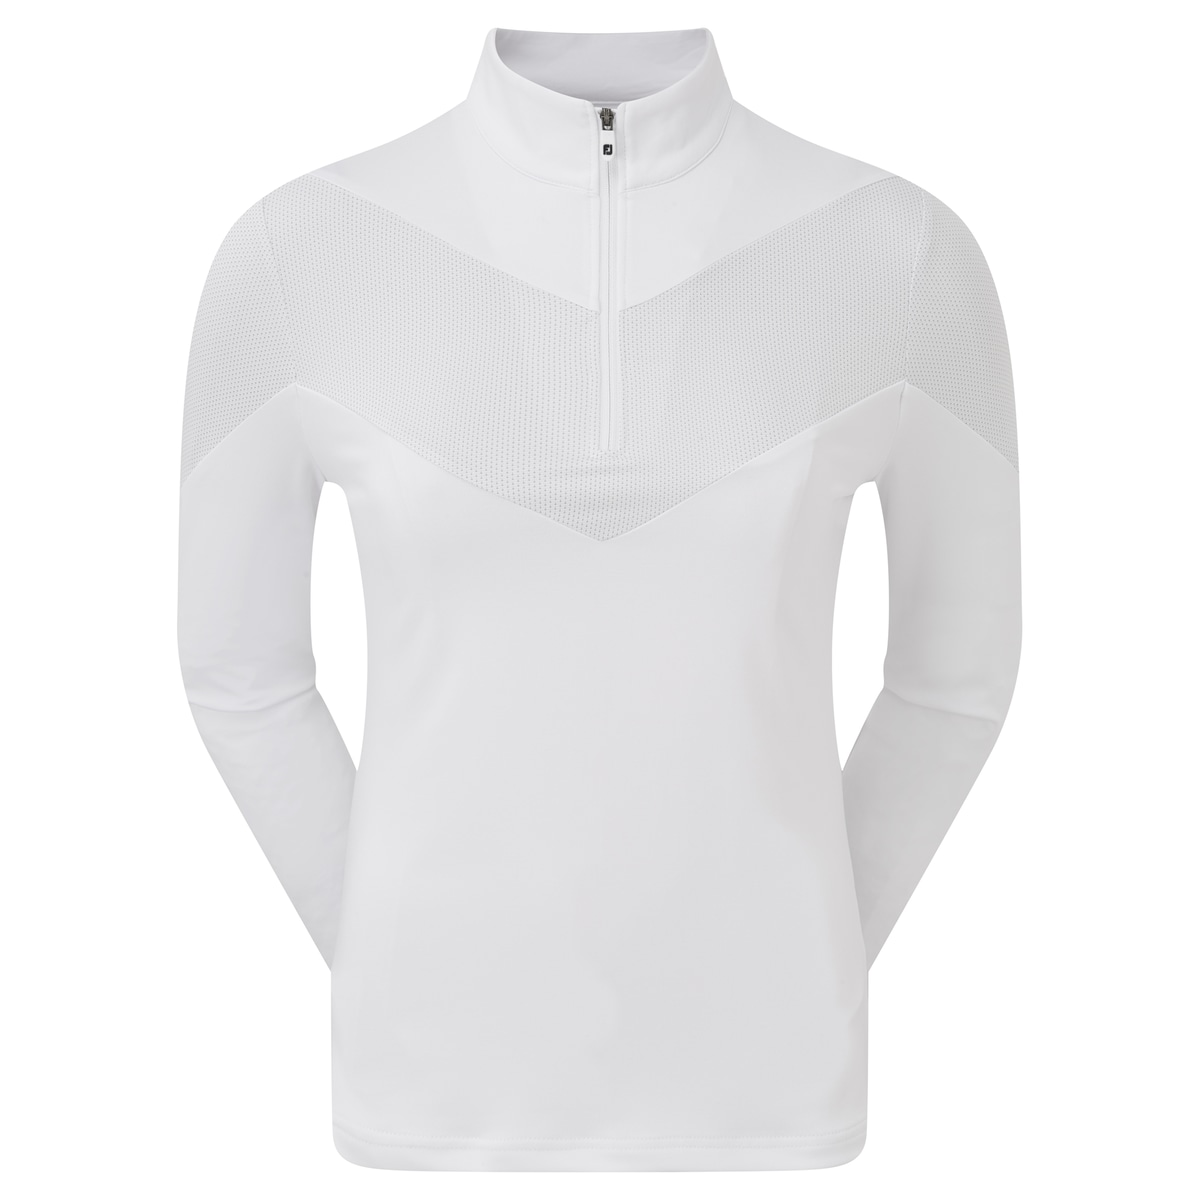 Engineered Jersey Half Zip Women